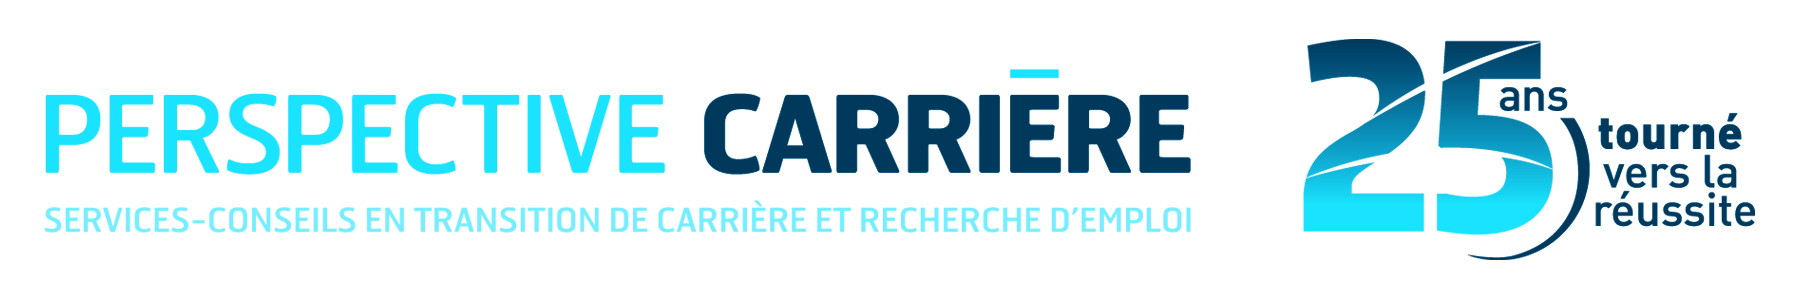 PerspectiveCarriere 25ans Logo CMYK1